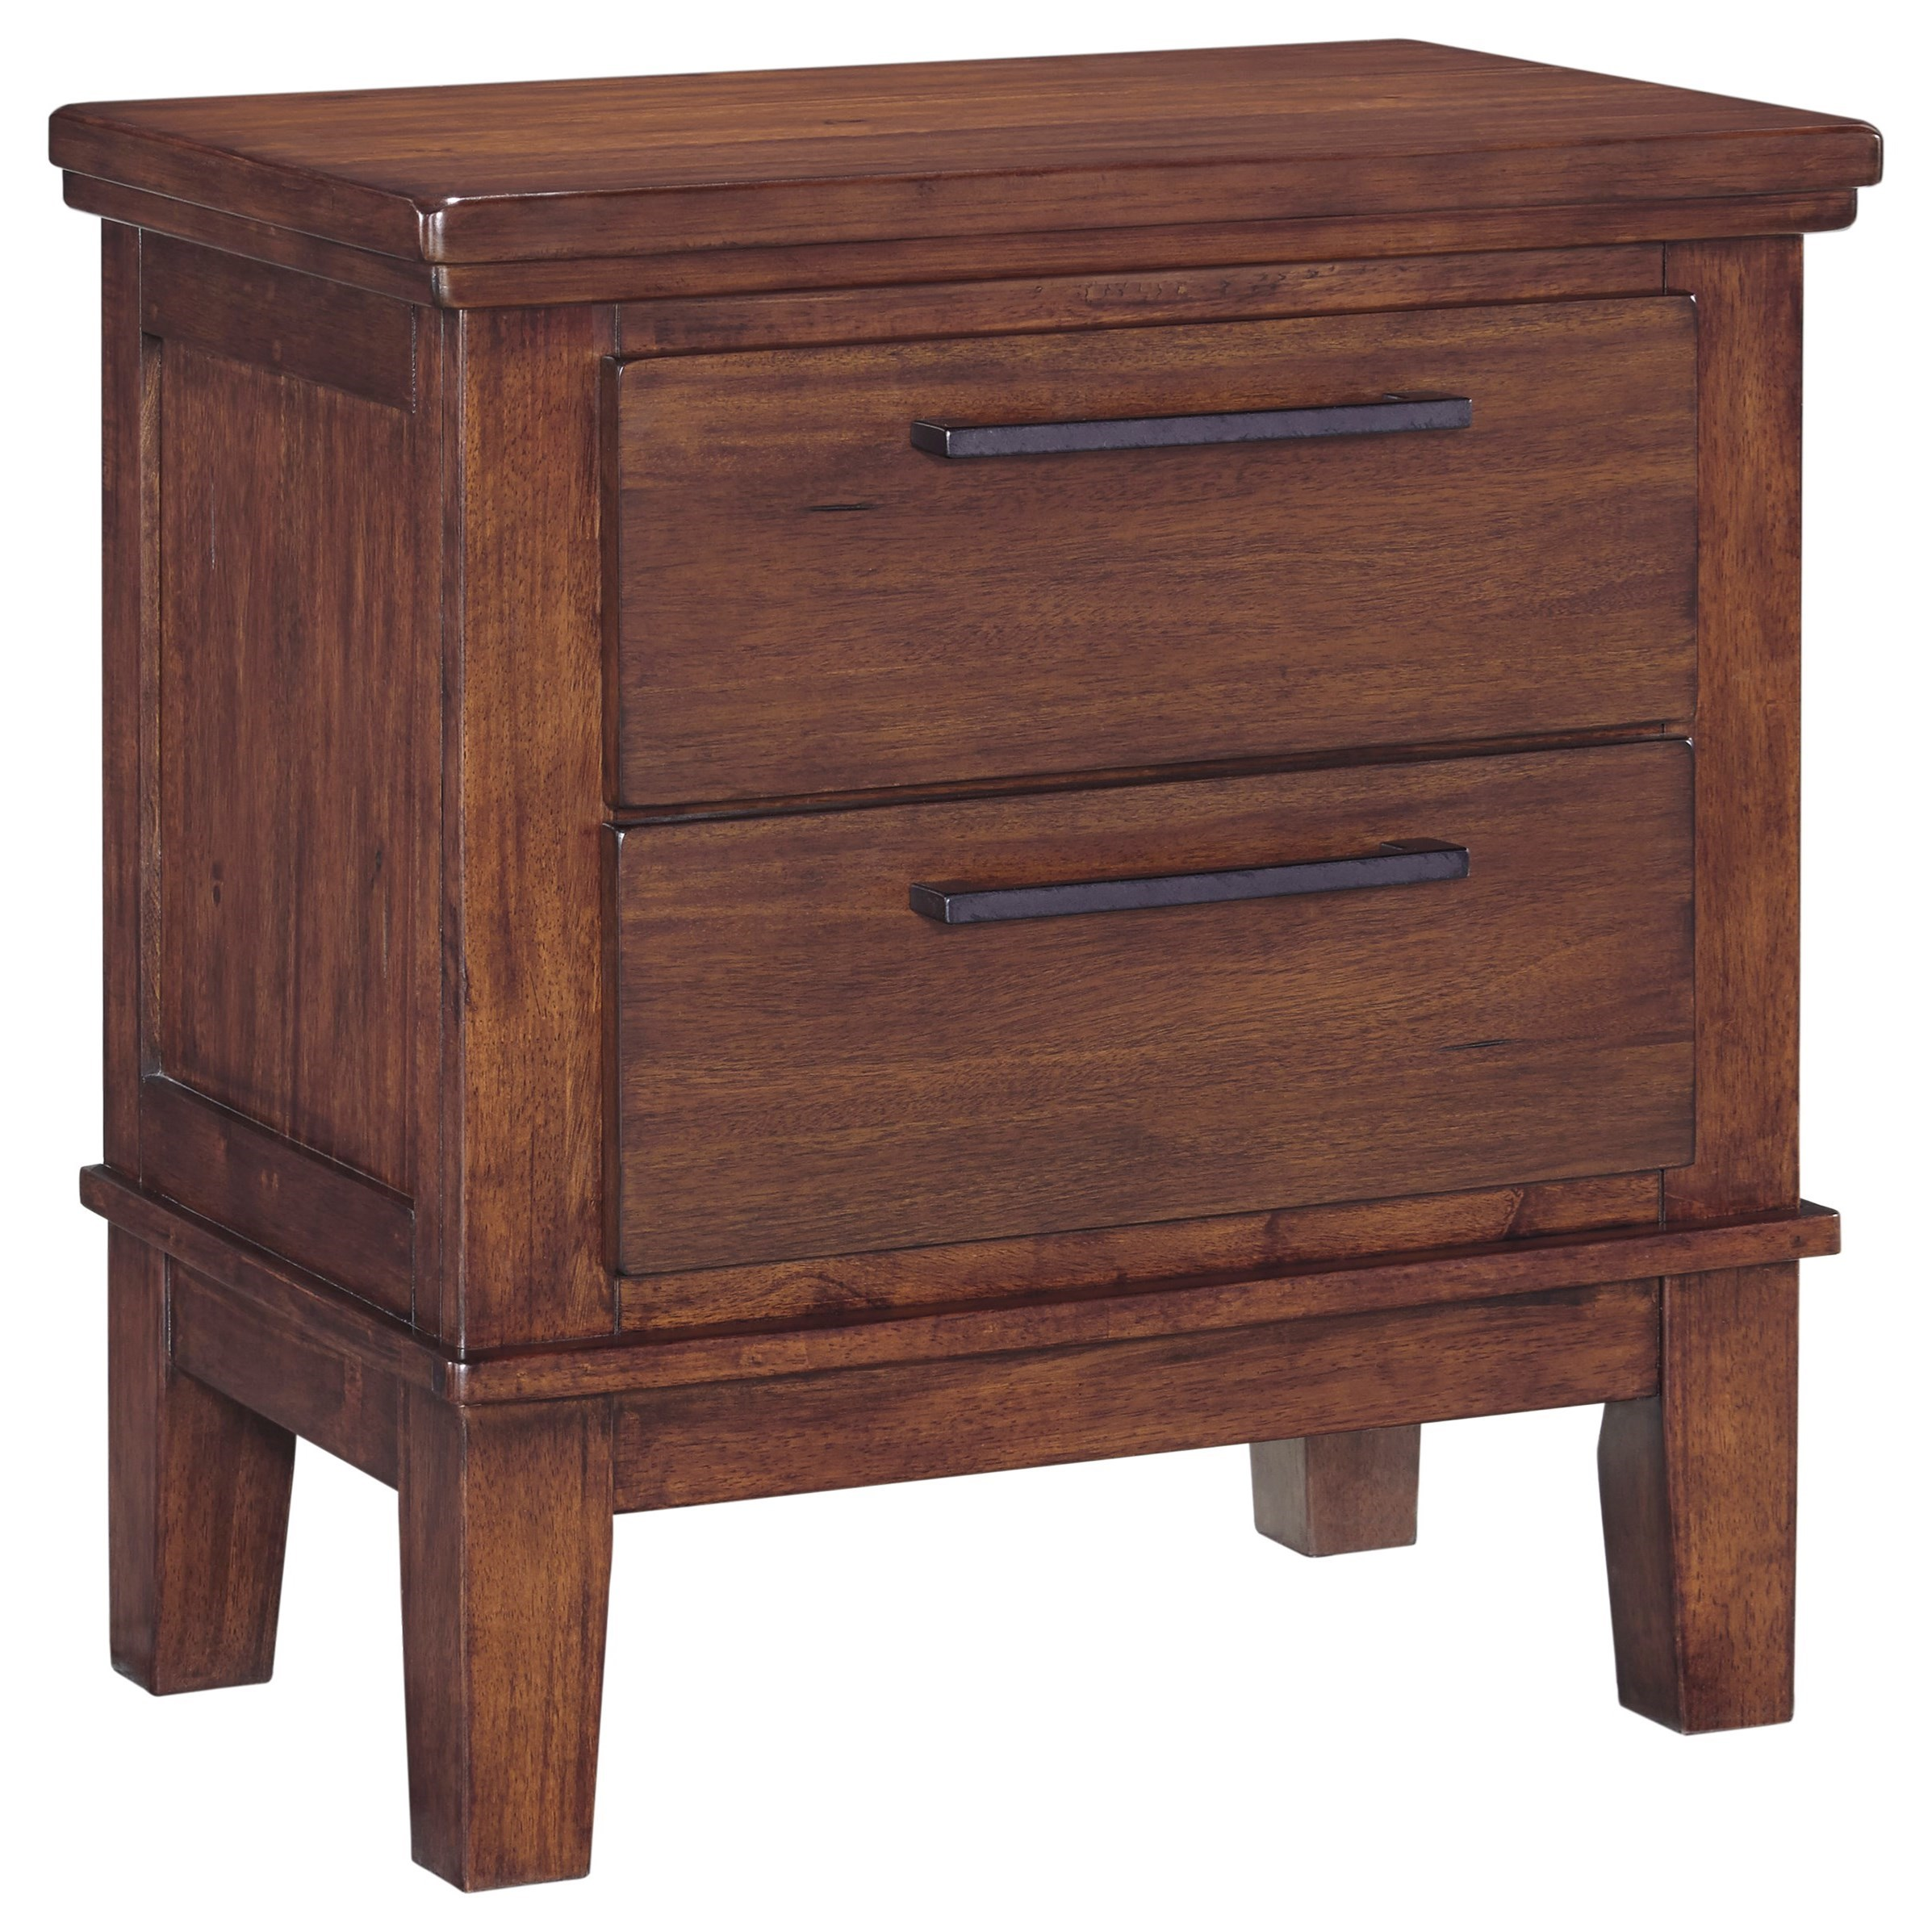 Ralene 2-Drawer Nightstand by Signature Design by Ashley at Miller Home